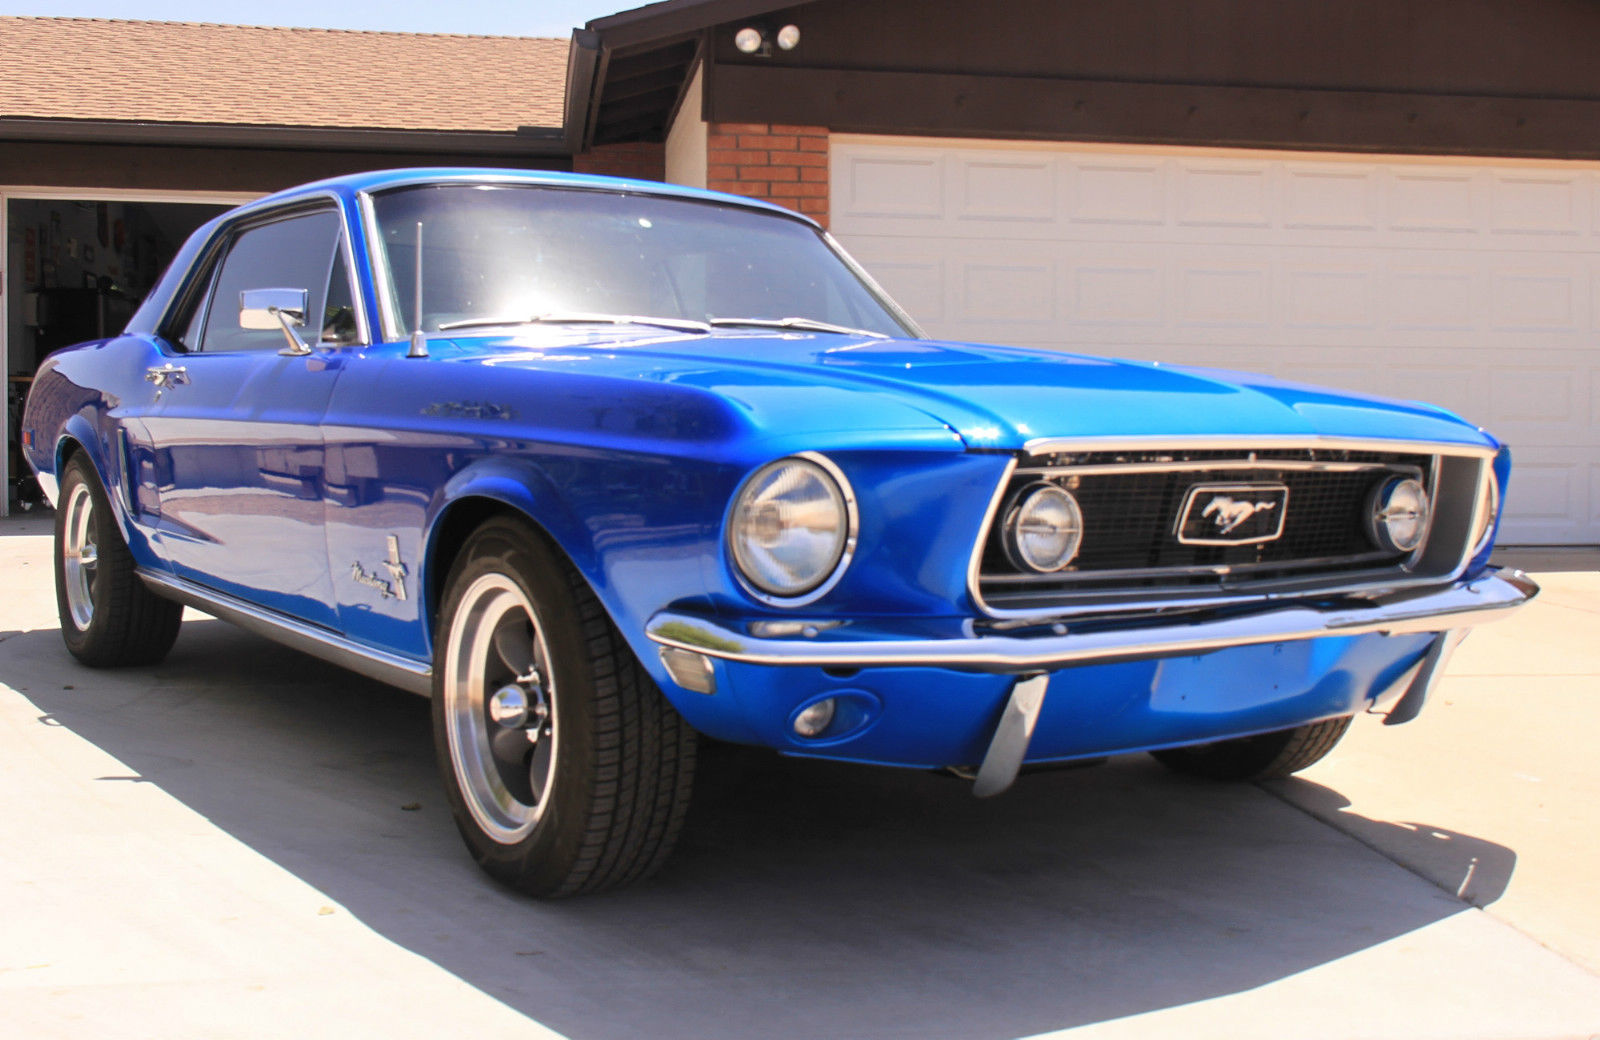 68 ford mustang coupe car autos gallery - Ford mustang vintage ...